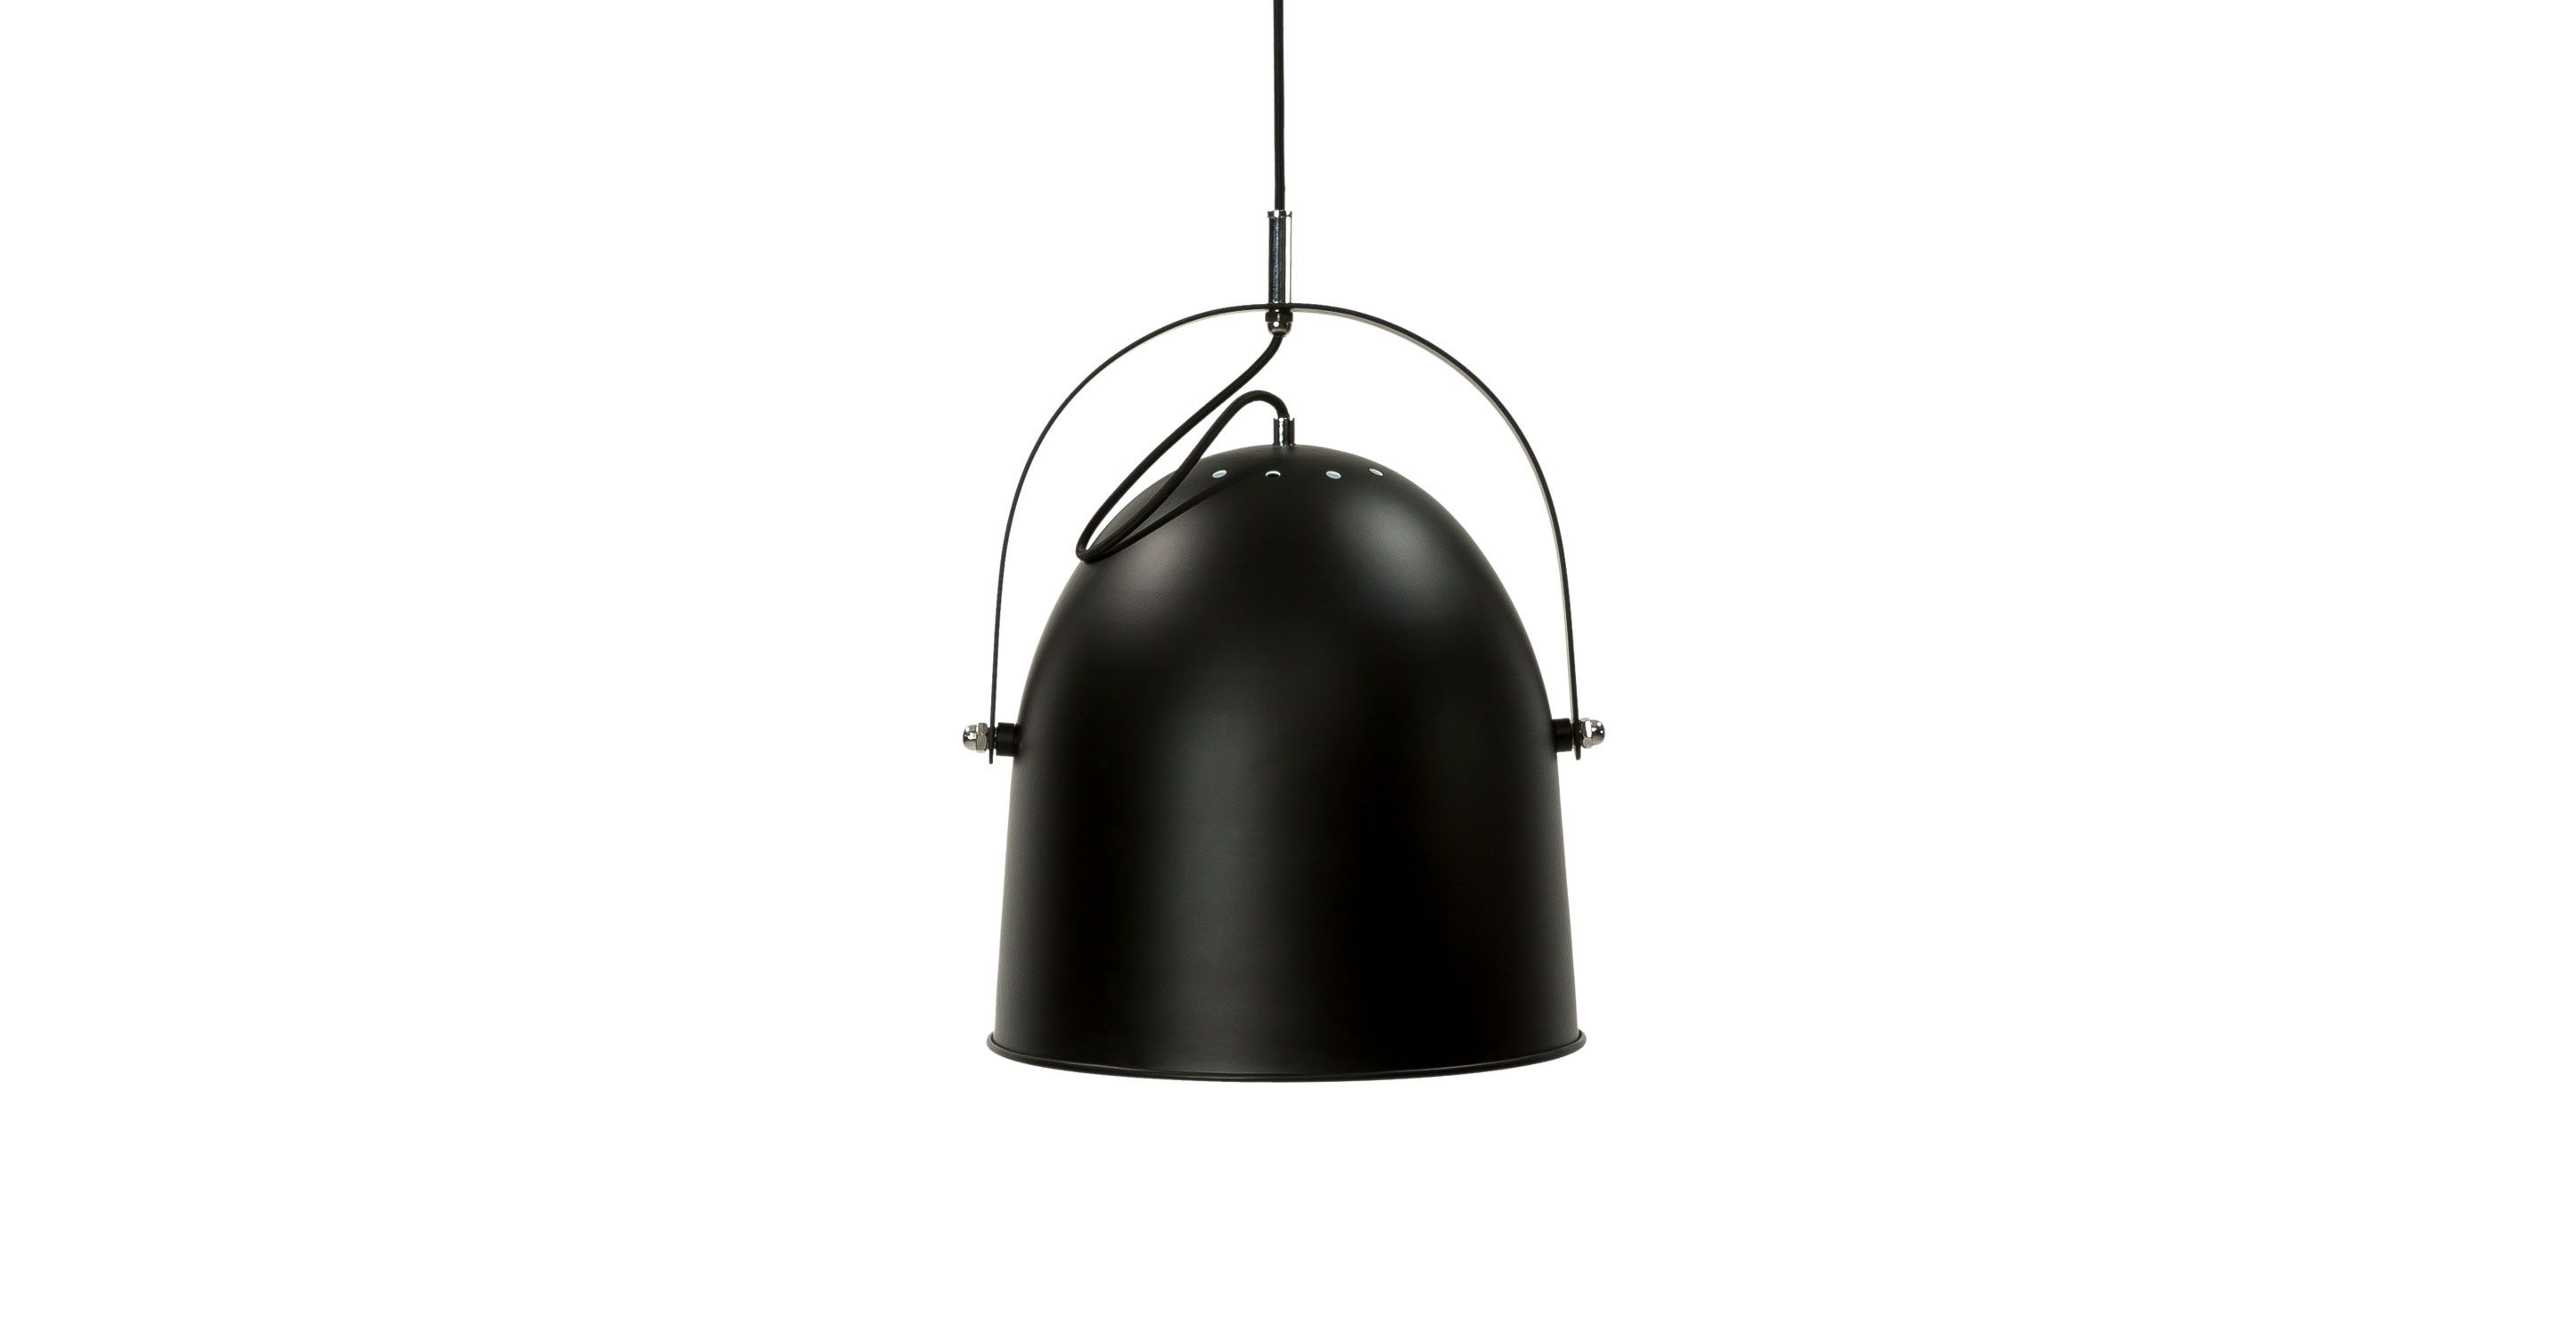 obj mtl max furniture moss lighting cedar cgtrader models lamp and globe black pendant model